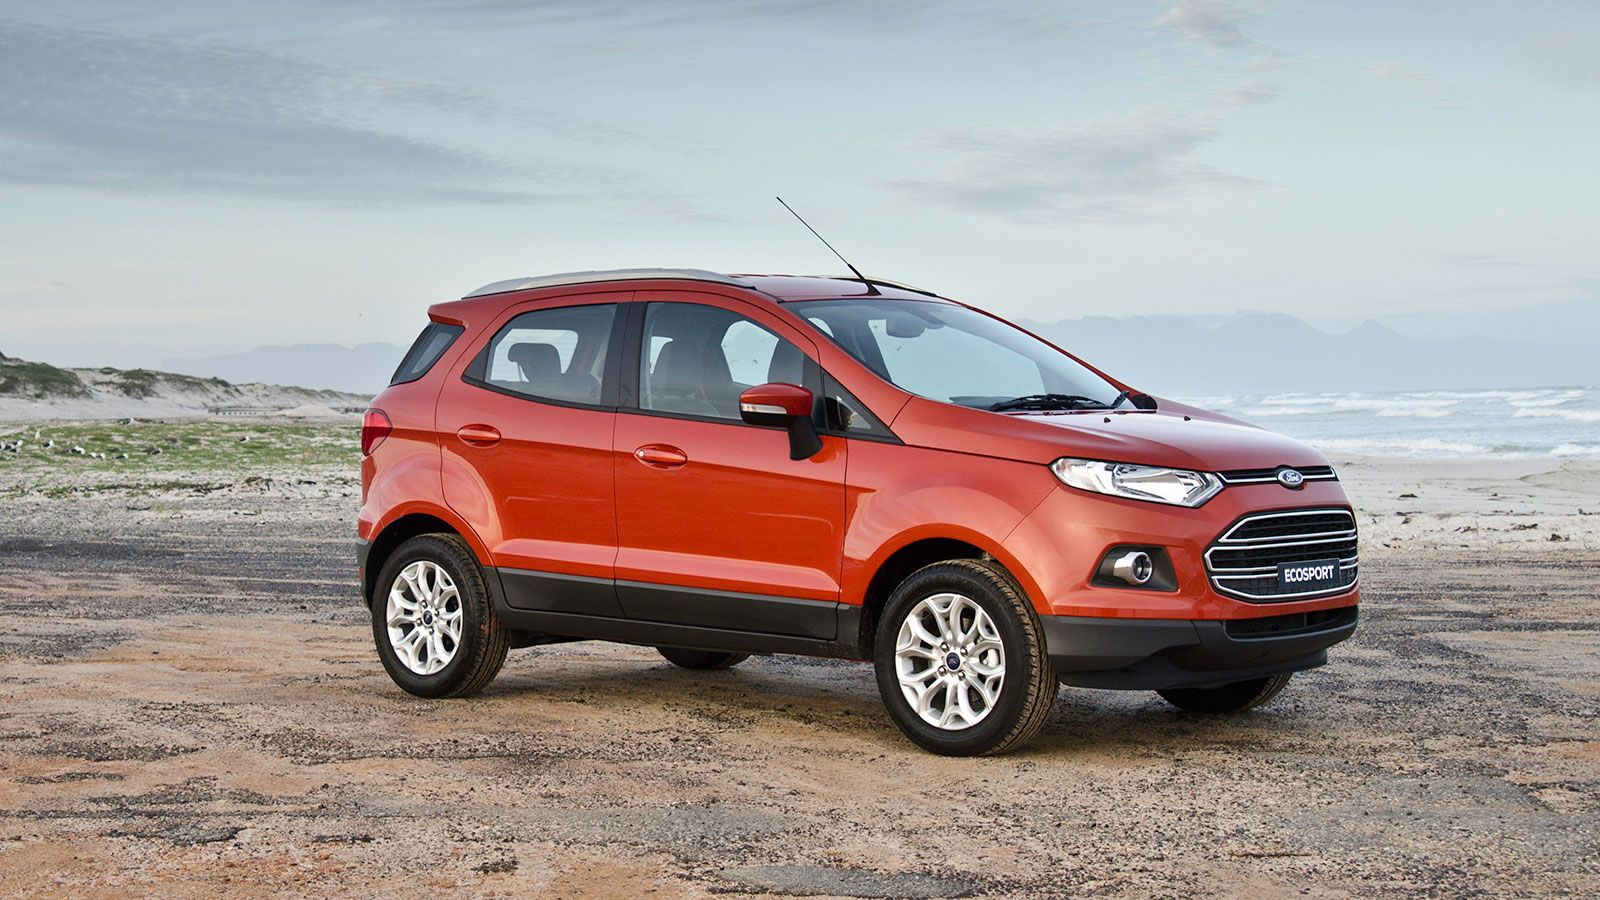 Ford Ecosport Hd Images Ford Ecosport Ford Hd Images